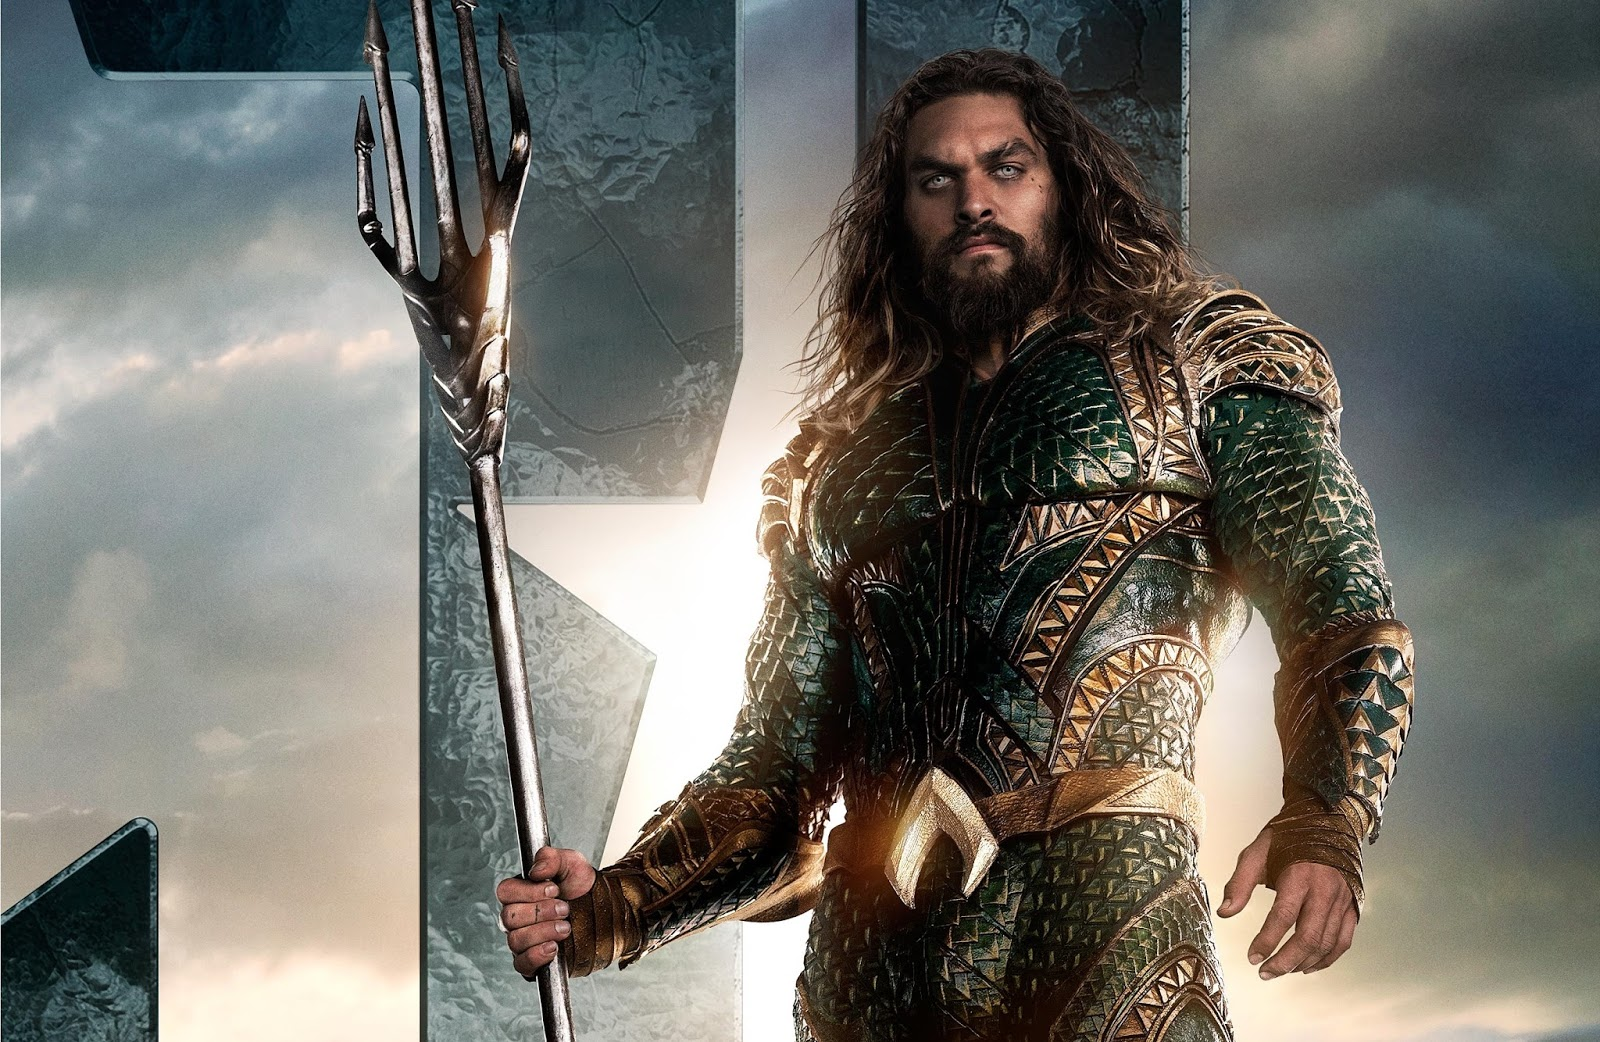 Justice League Aquaman Wallpapers,Justice League Full HD Wallpapers